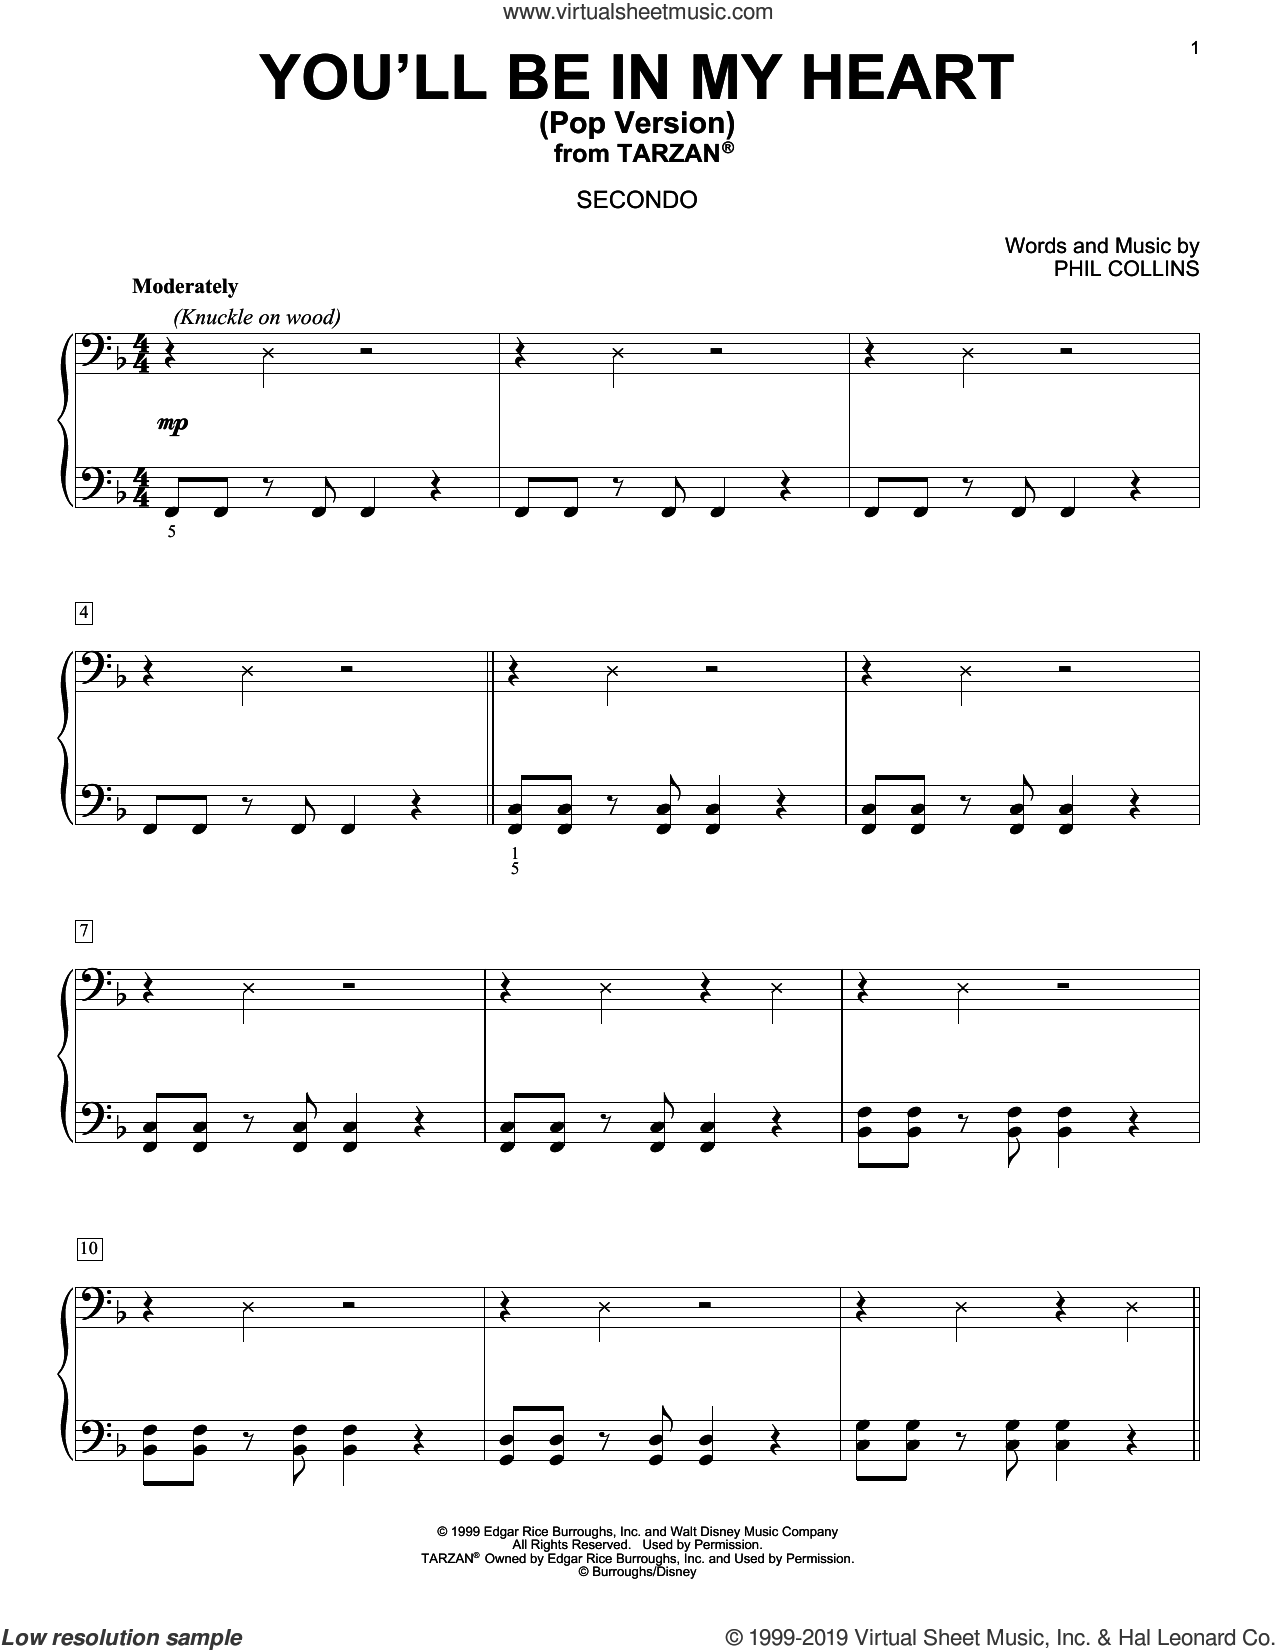 You'll Be In My Heart (Pop Version) (from Tarzan) sheet music for piano four hands by Phil Collins, intermediate skill level